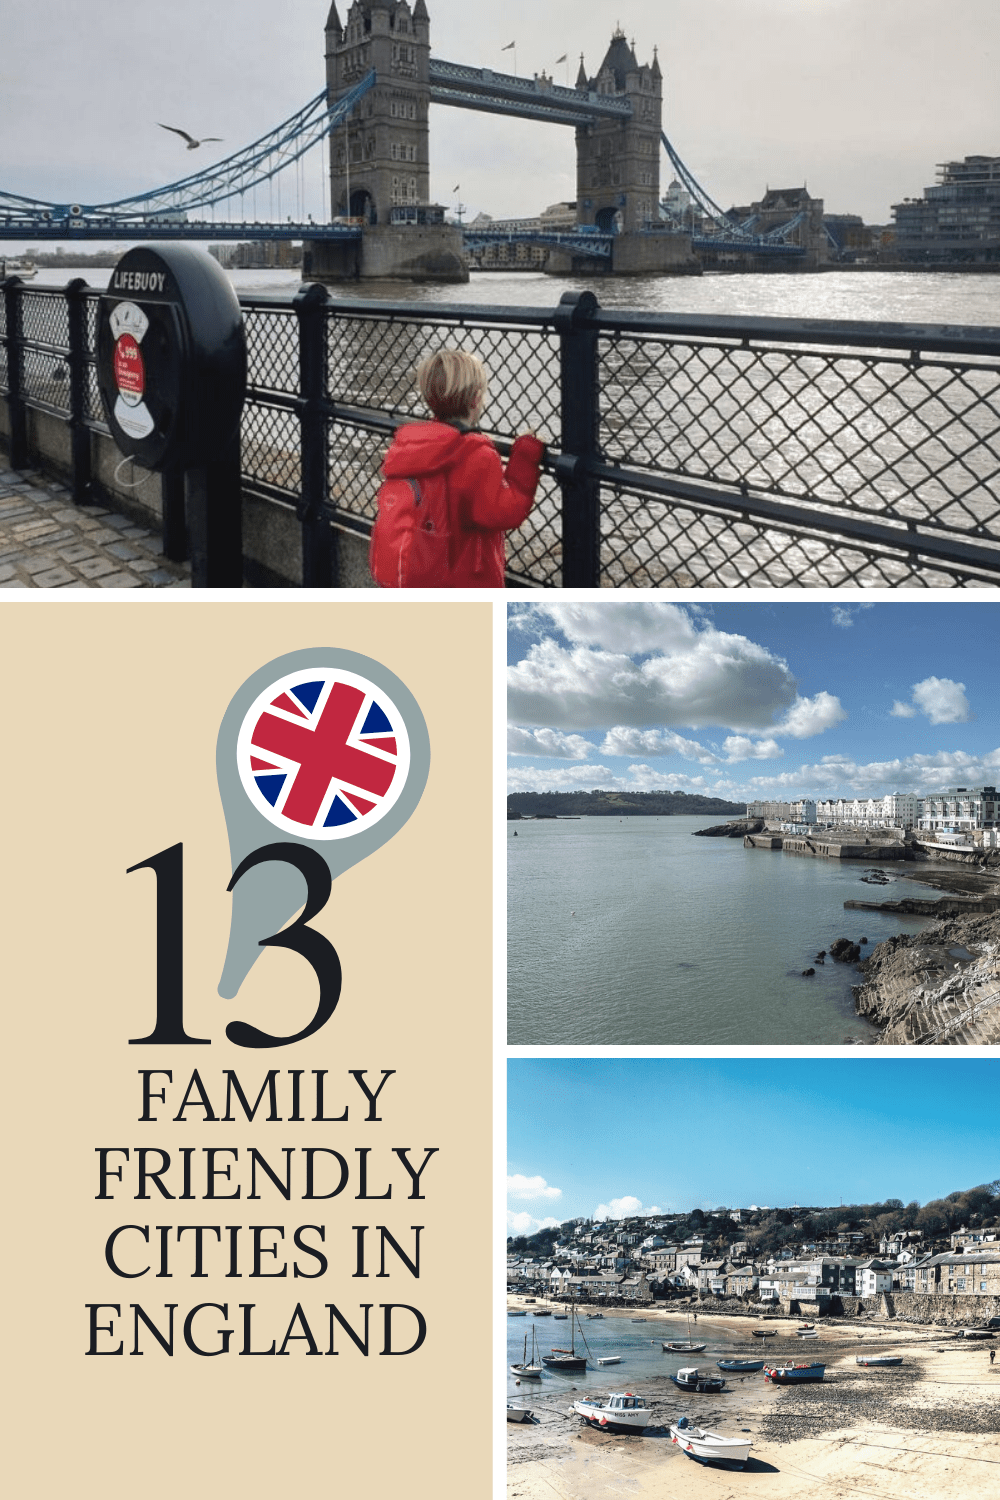 Discover some of the best family friendly cities in England that make the perfect getaway for your next family vacation